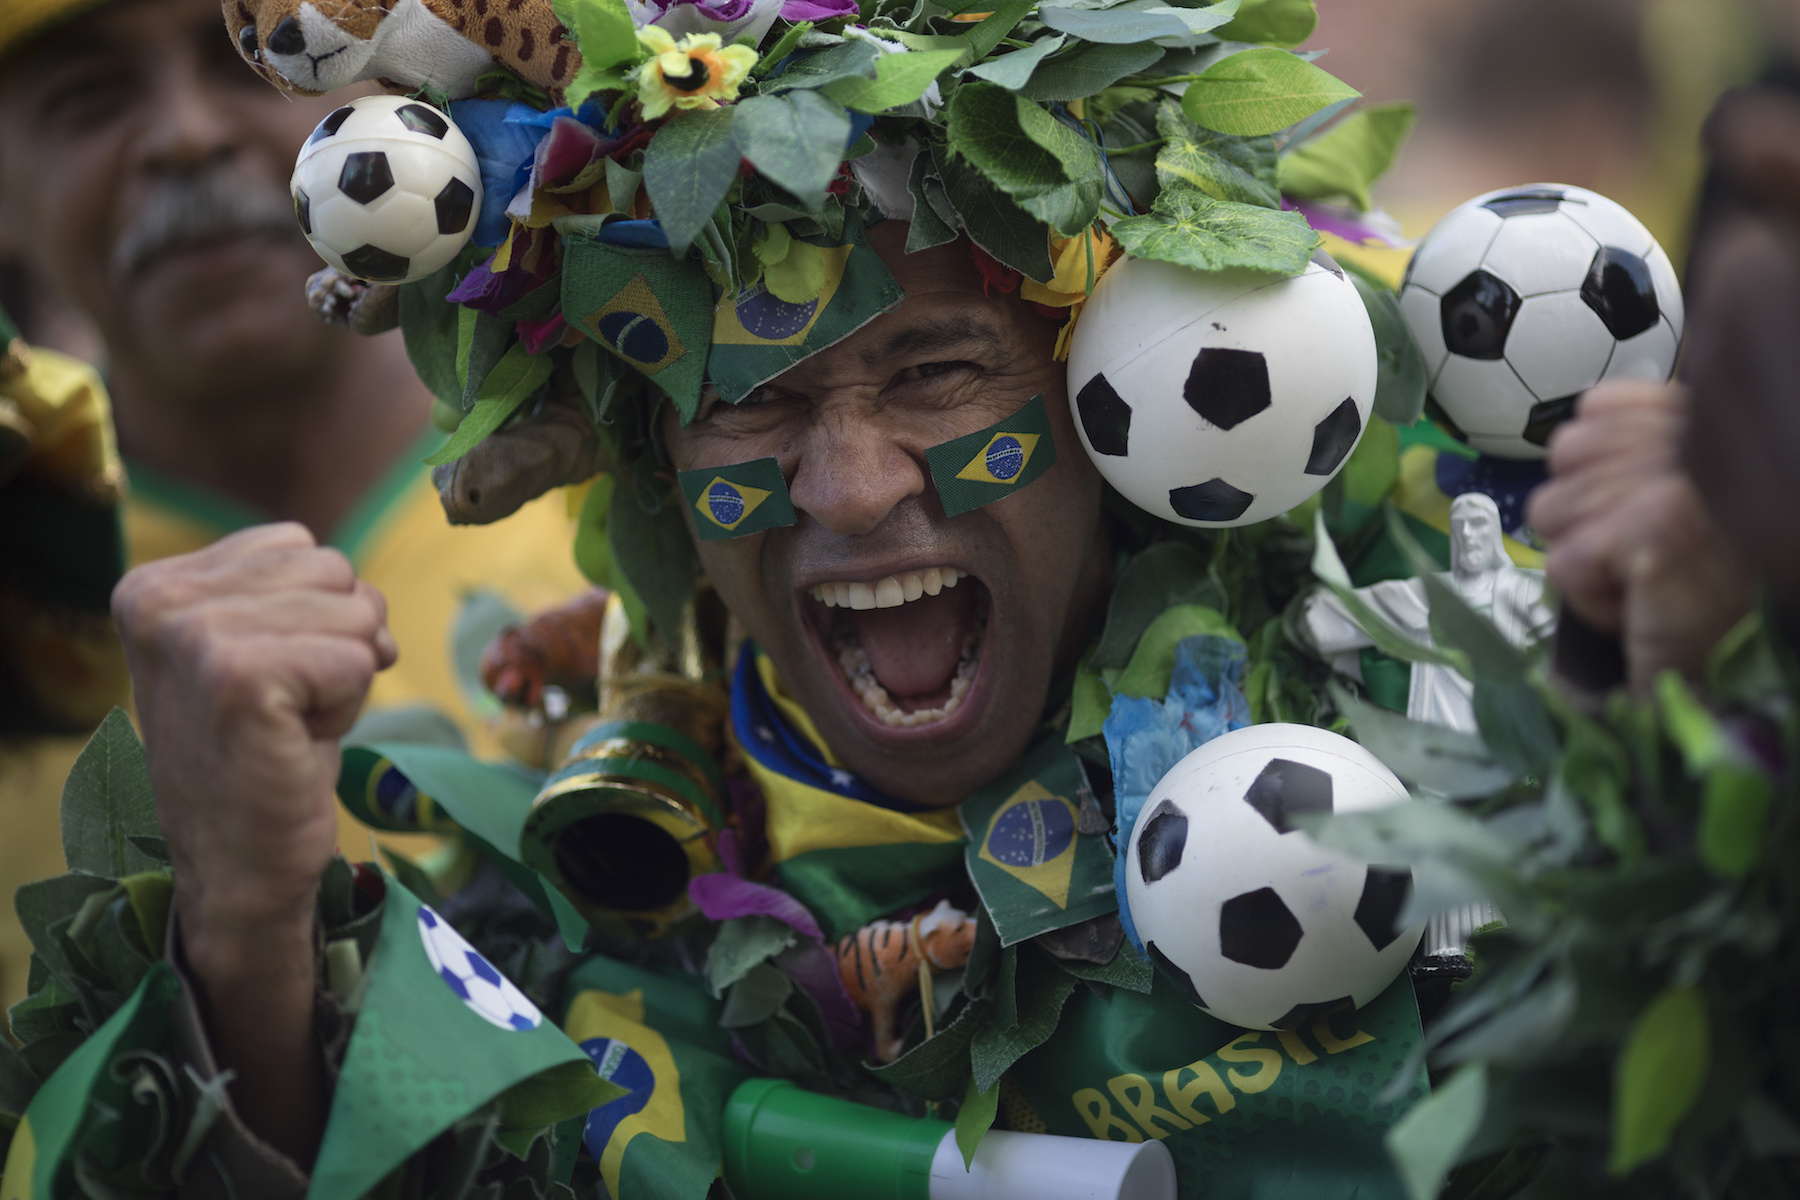 "<div class=""meta image-caption""><div class=""origin-logo origin-image ap""><span>AP</span></div><span class=""caption-text"">A Brazil soccer fan, in a costume, poses to the camera as he cheers before his team's World Cup match against Switzerland in Rio de Janeiro, Brazil, Sunday, June 17, 2018. (AP Photo/Leo Correa)</span></div>"